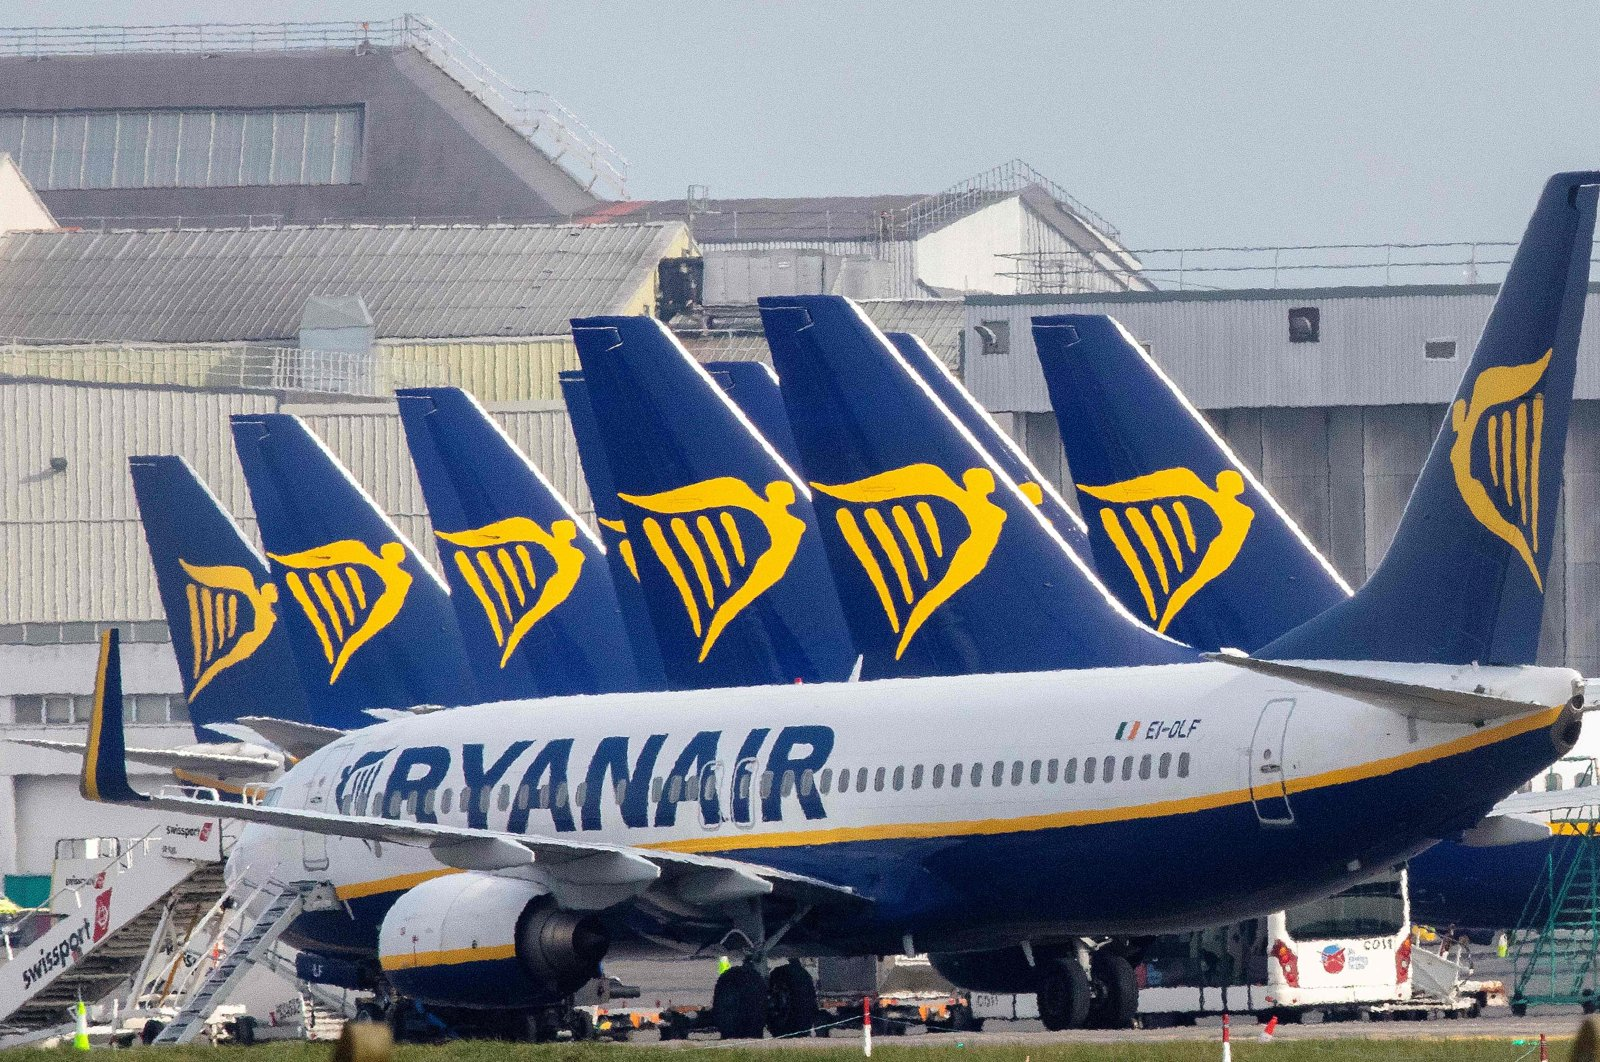 Ryanair passenger jets sit on the tarmac at the Dublin airport, March 23, 2020.(AFP Photo)